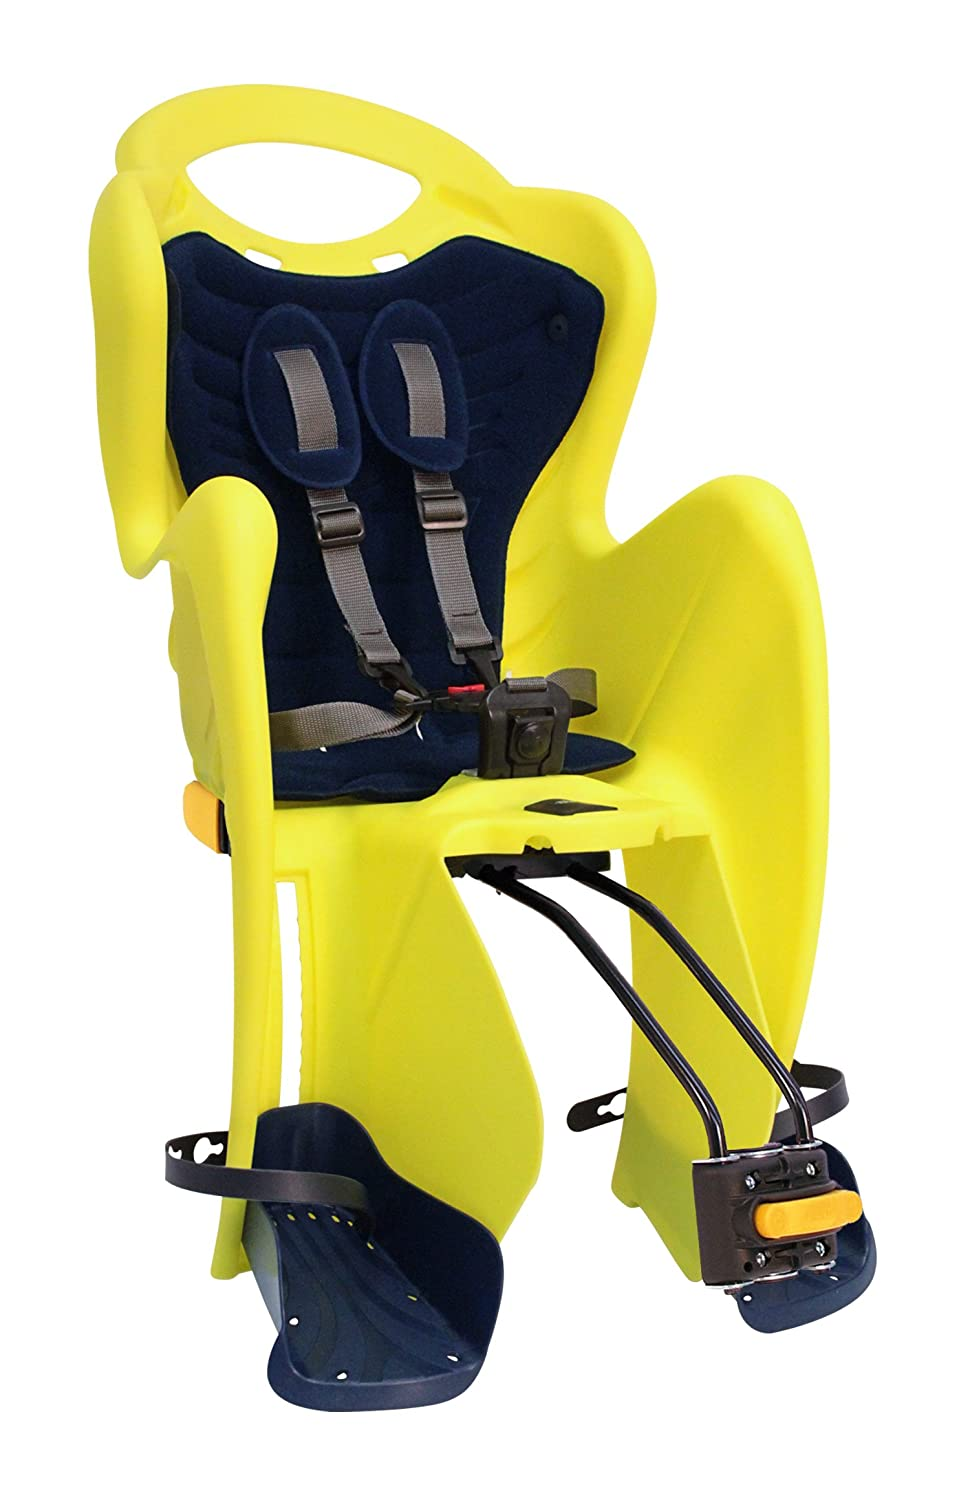 MammaCangura Italy - Highest in quality and safety Child bicycle carrier. Mr FOX RELAX High Visibility (Yellow) Rear seat by Bellelli-Italy